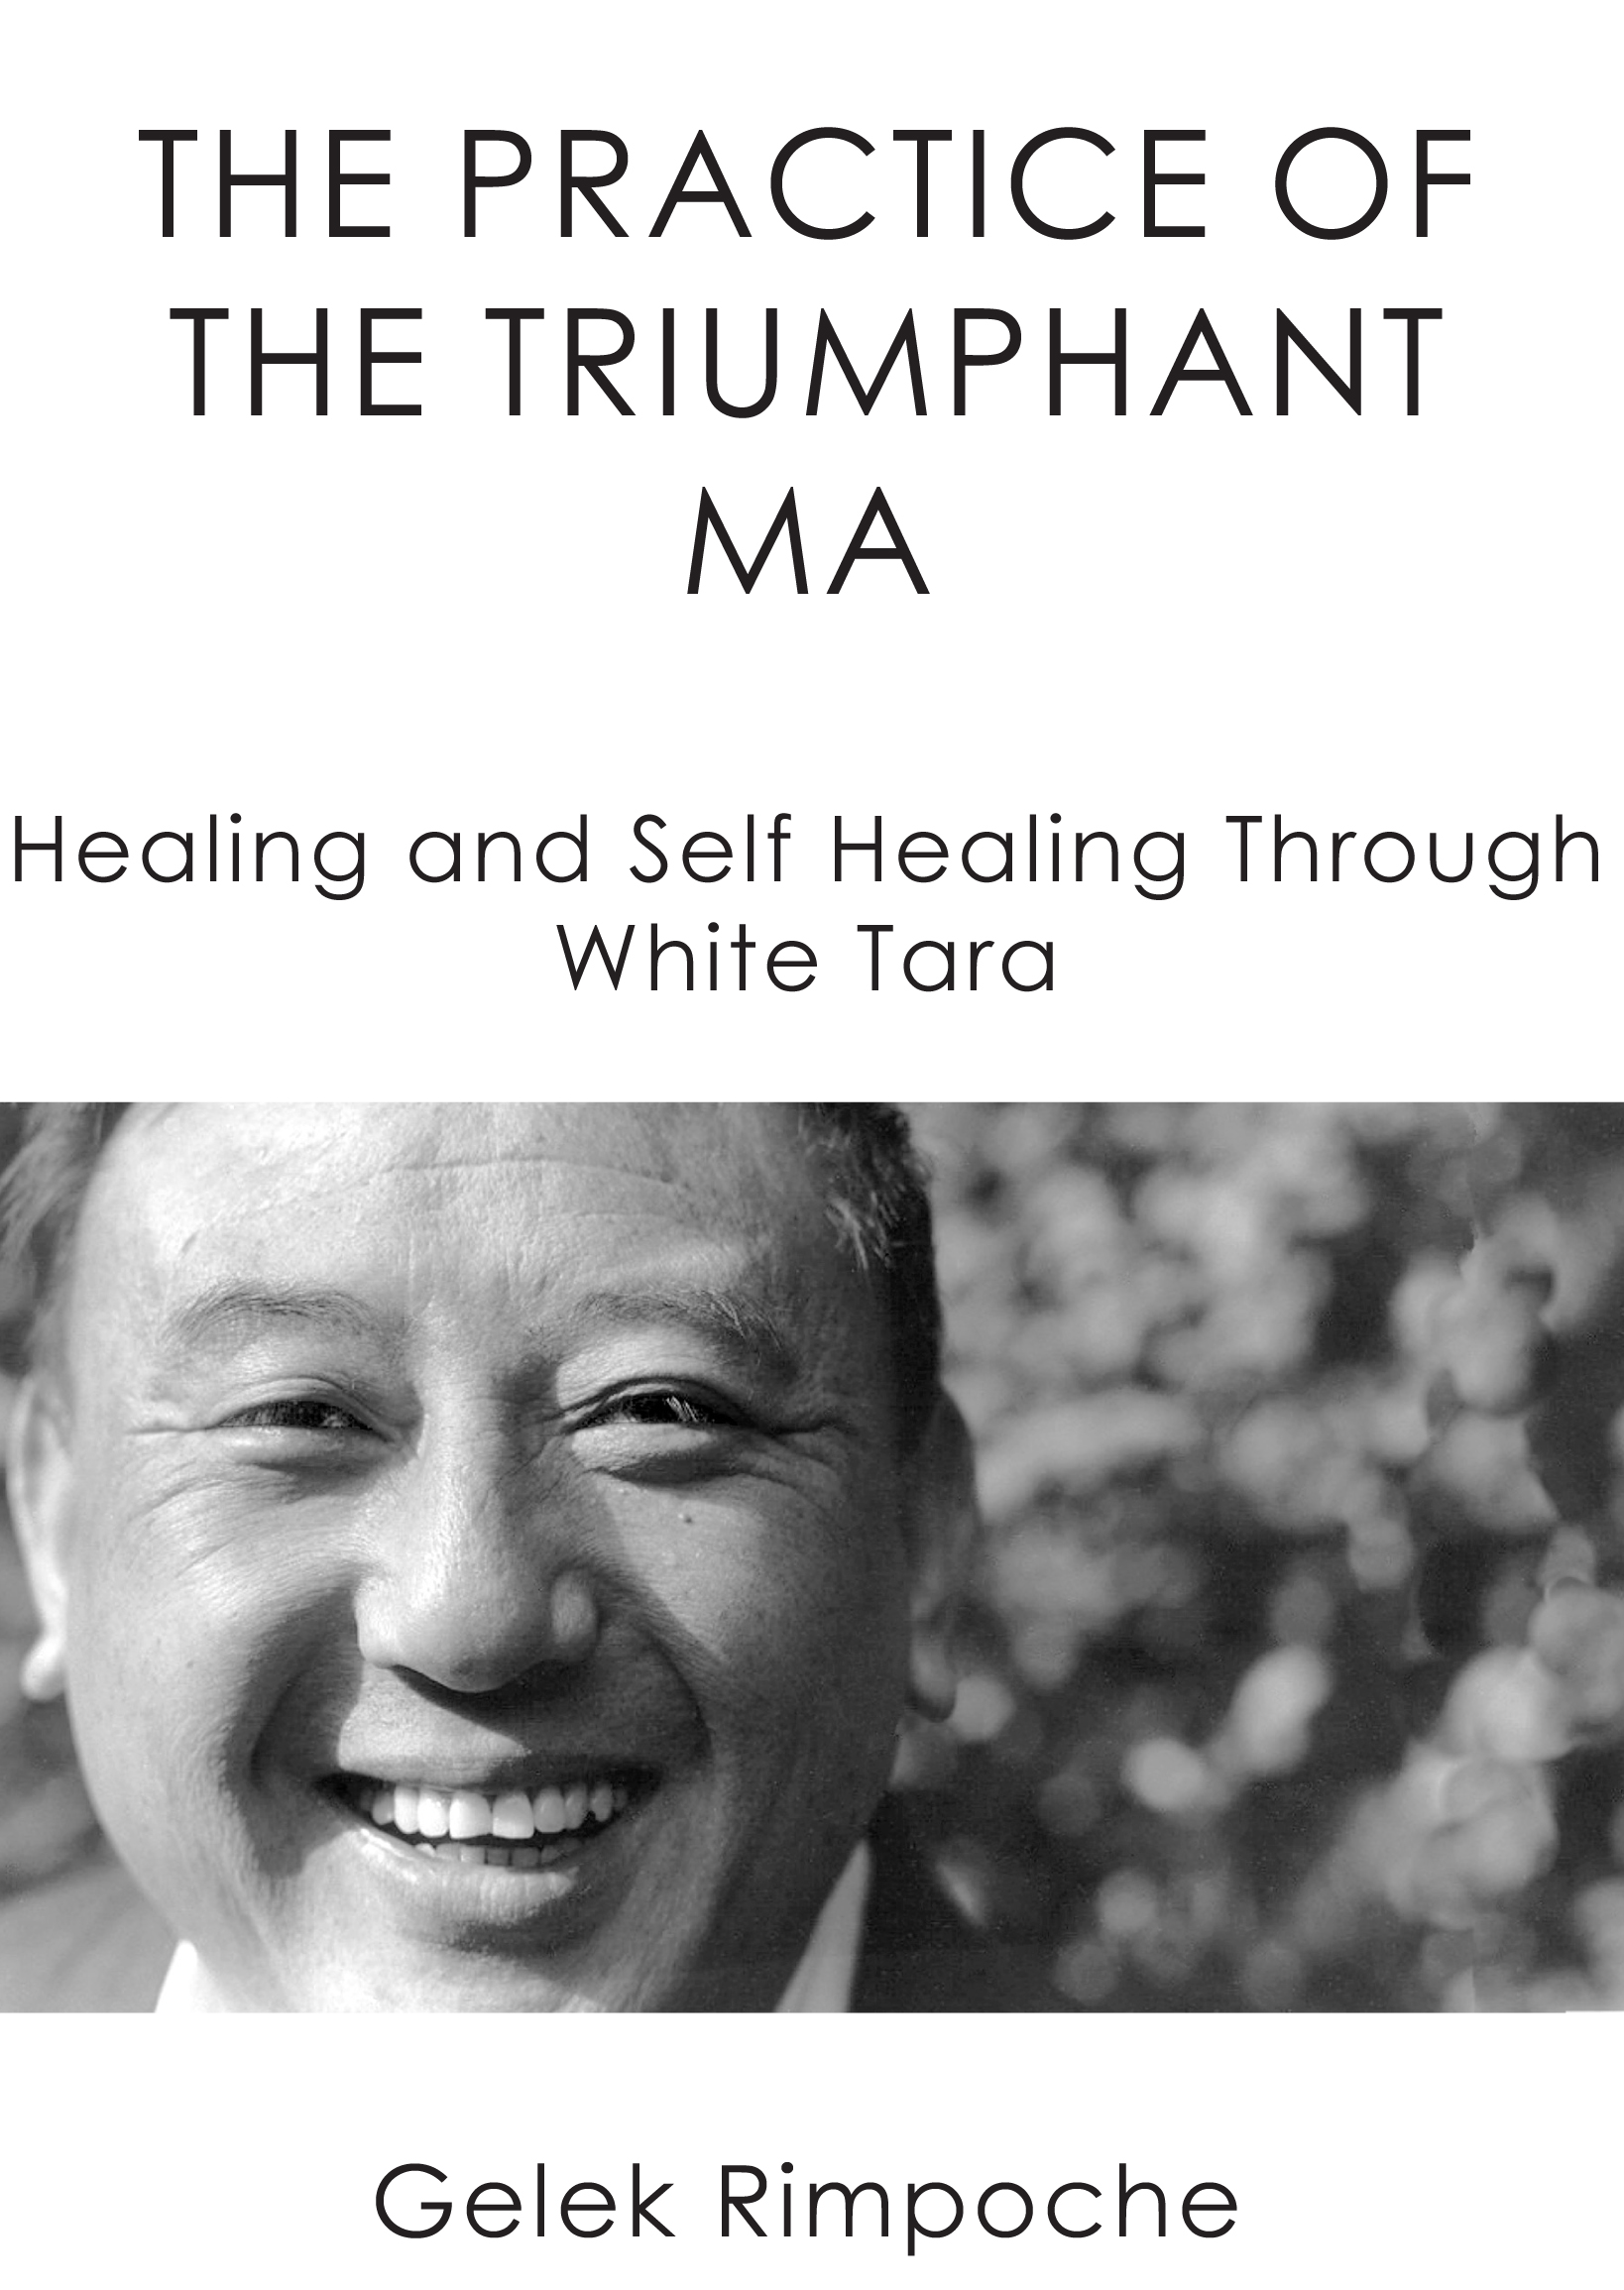 The Practice of the Triumphant Ma